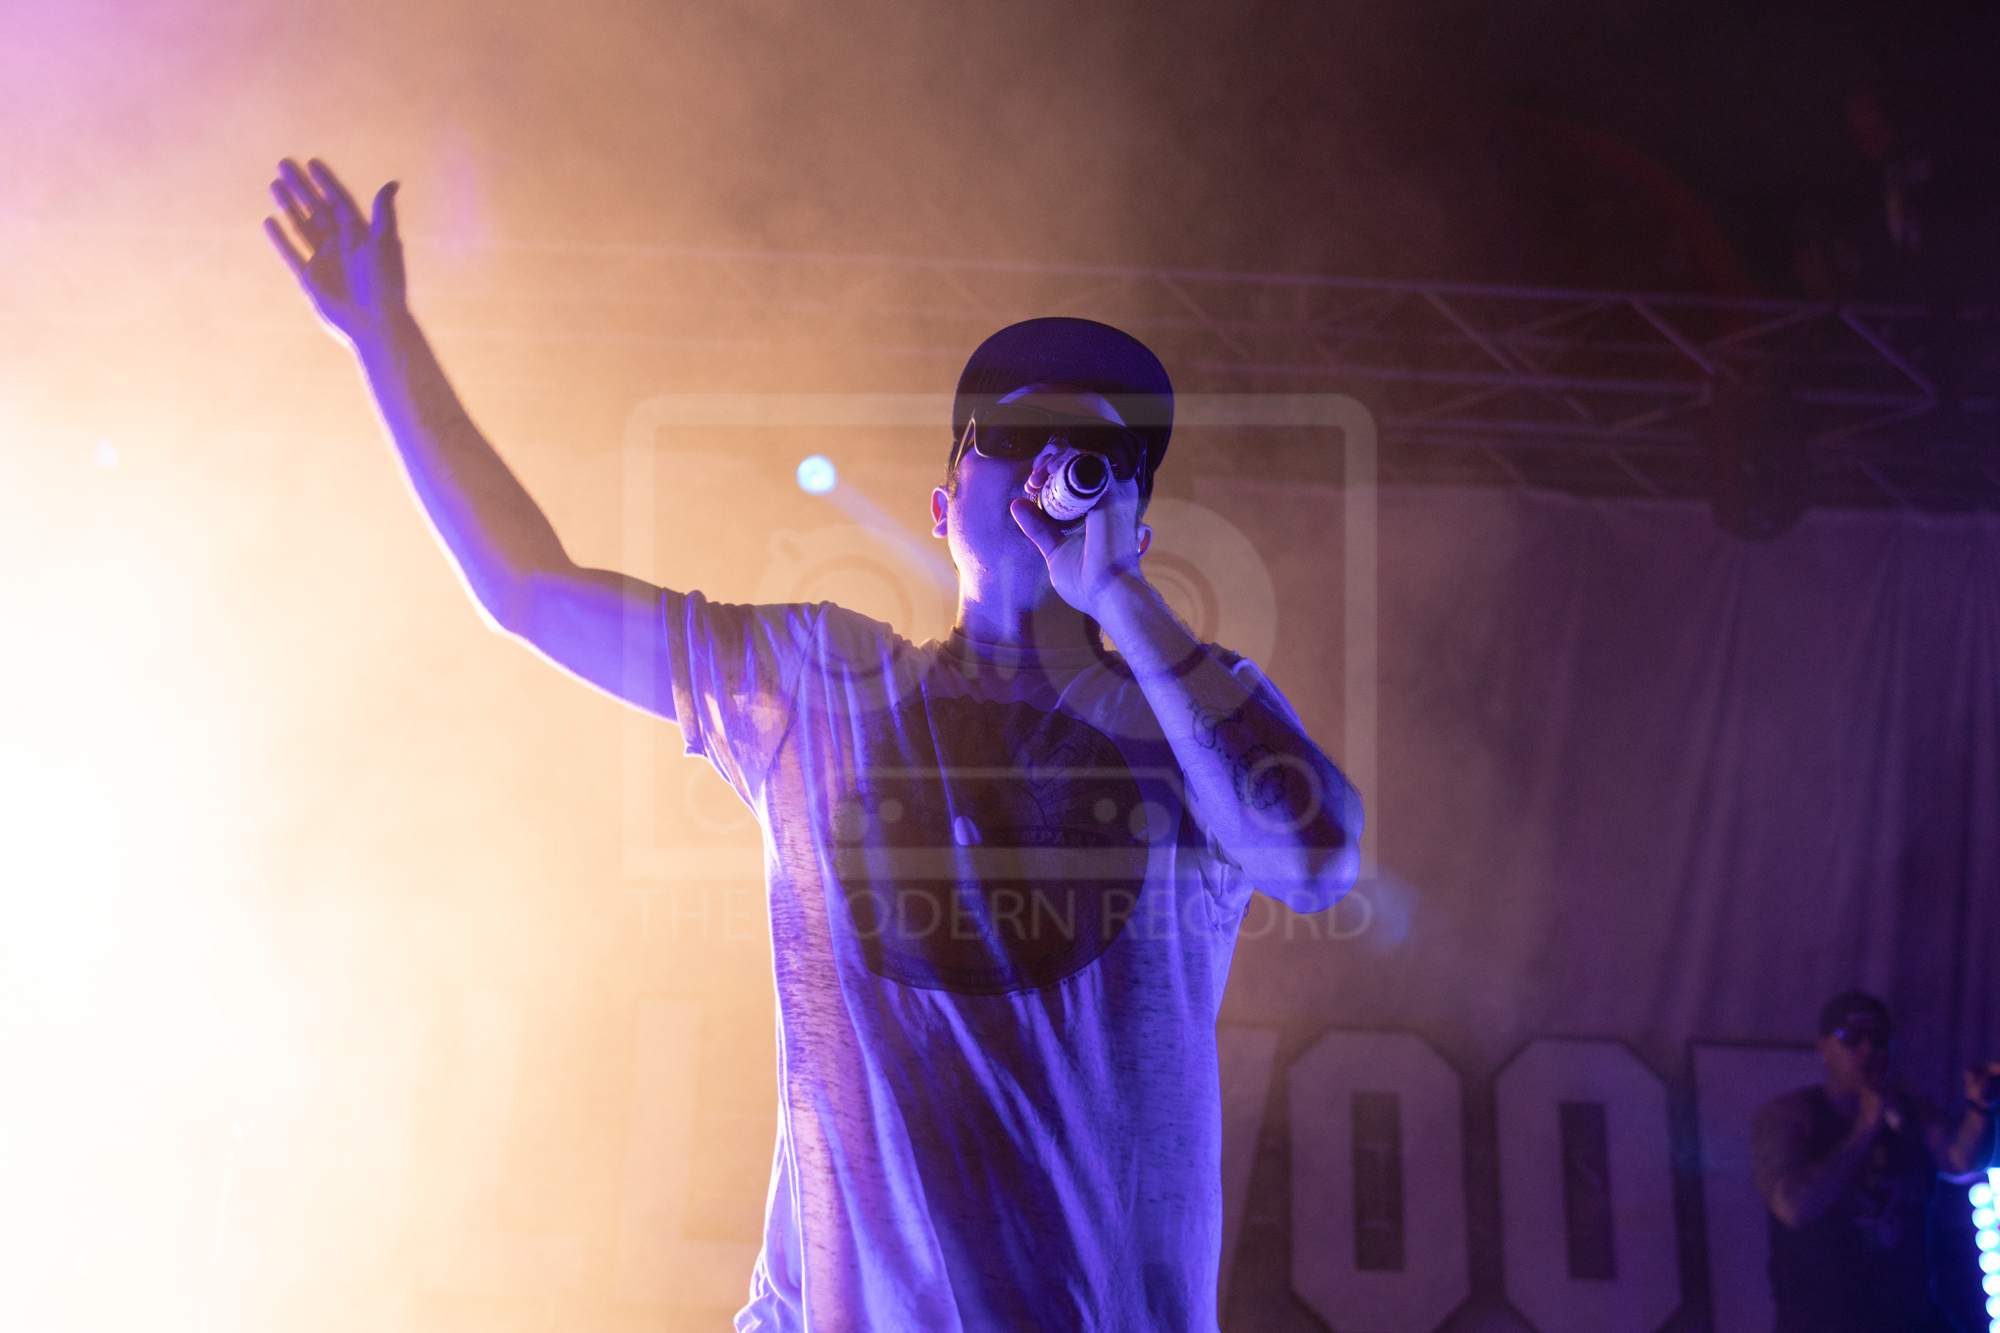 Hollywood Undead - 01.05.19 - PICTURE BY WILL GORMAN PHOTOGRAPHY-2783.JPG